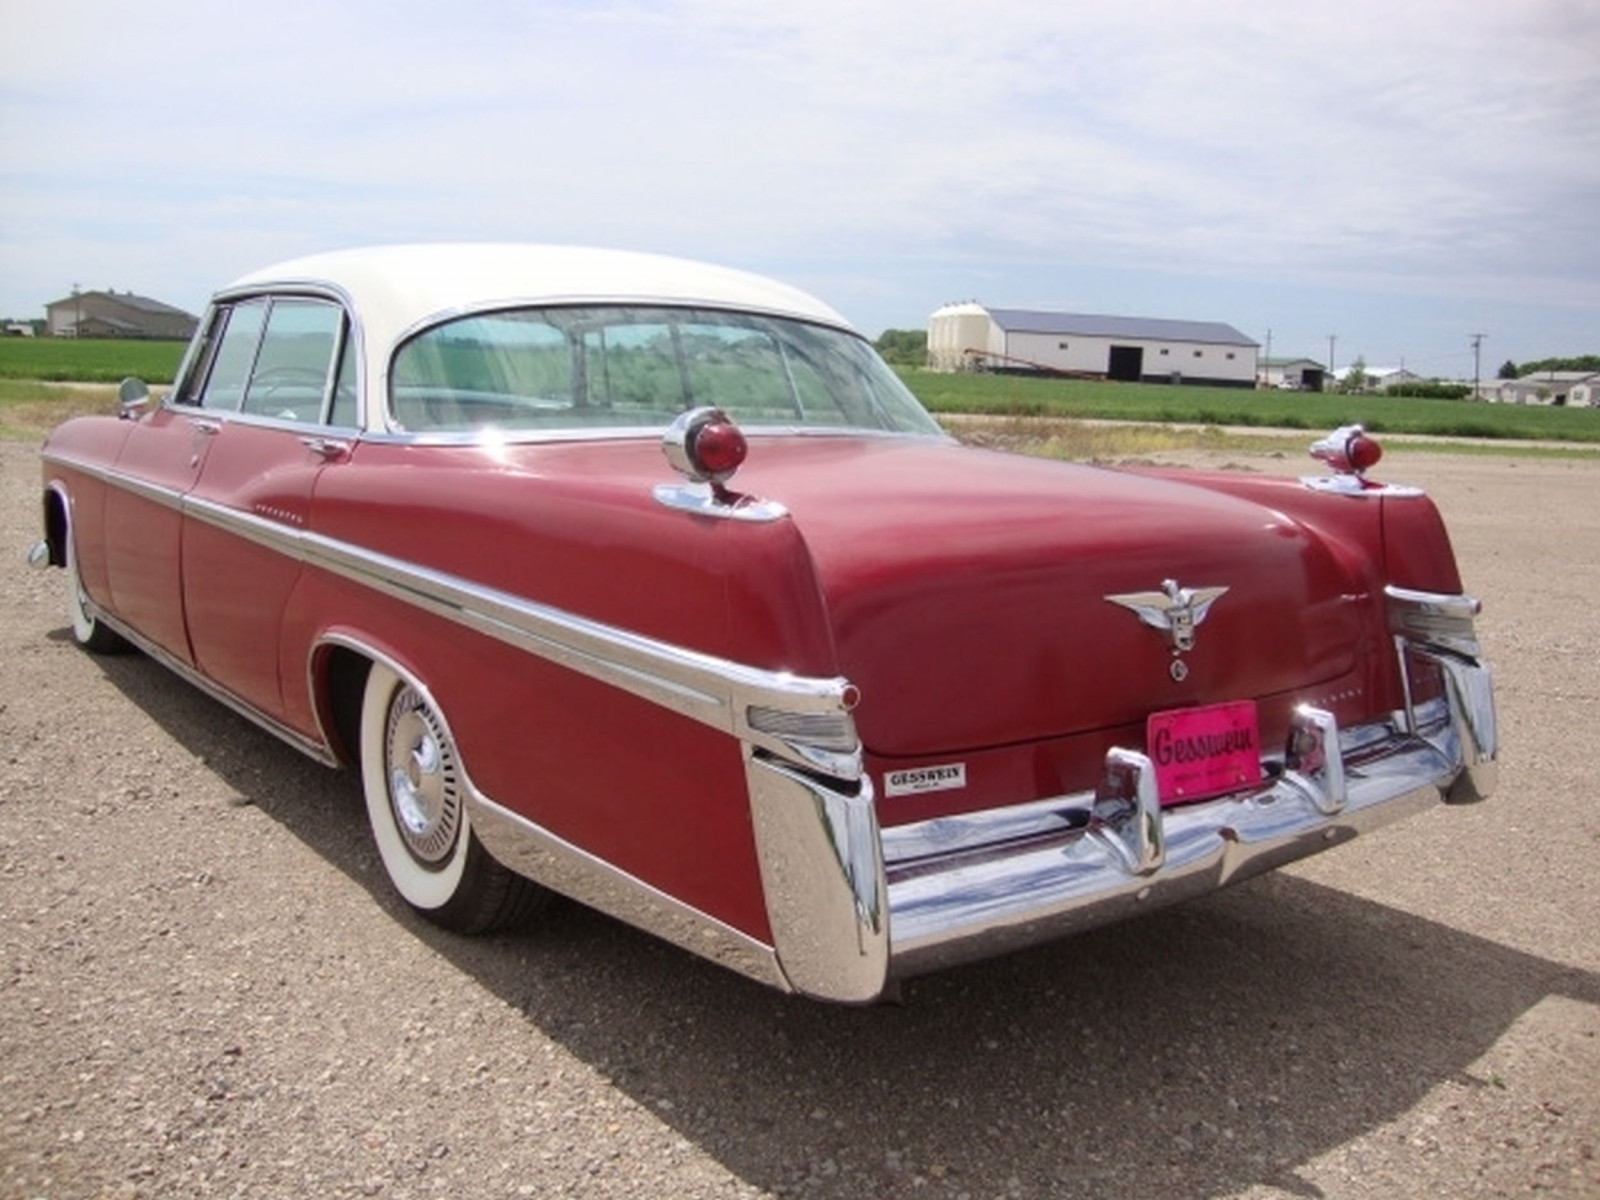 1956 Imperial 4dr Sedan - Image 4